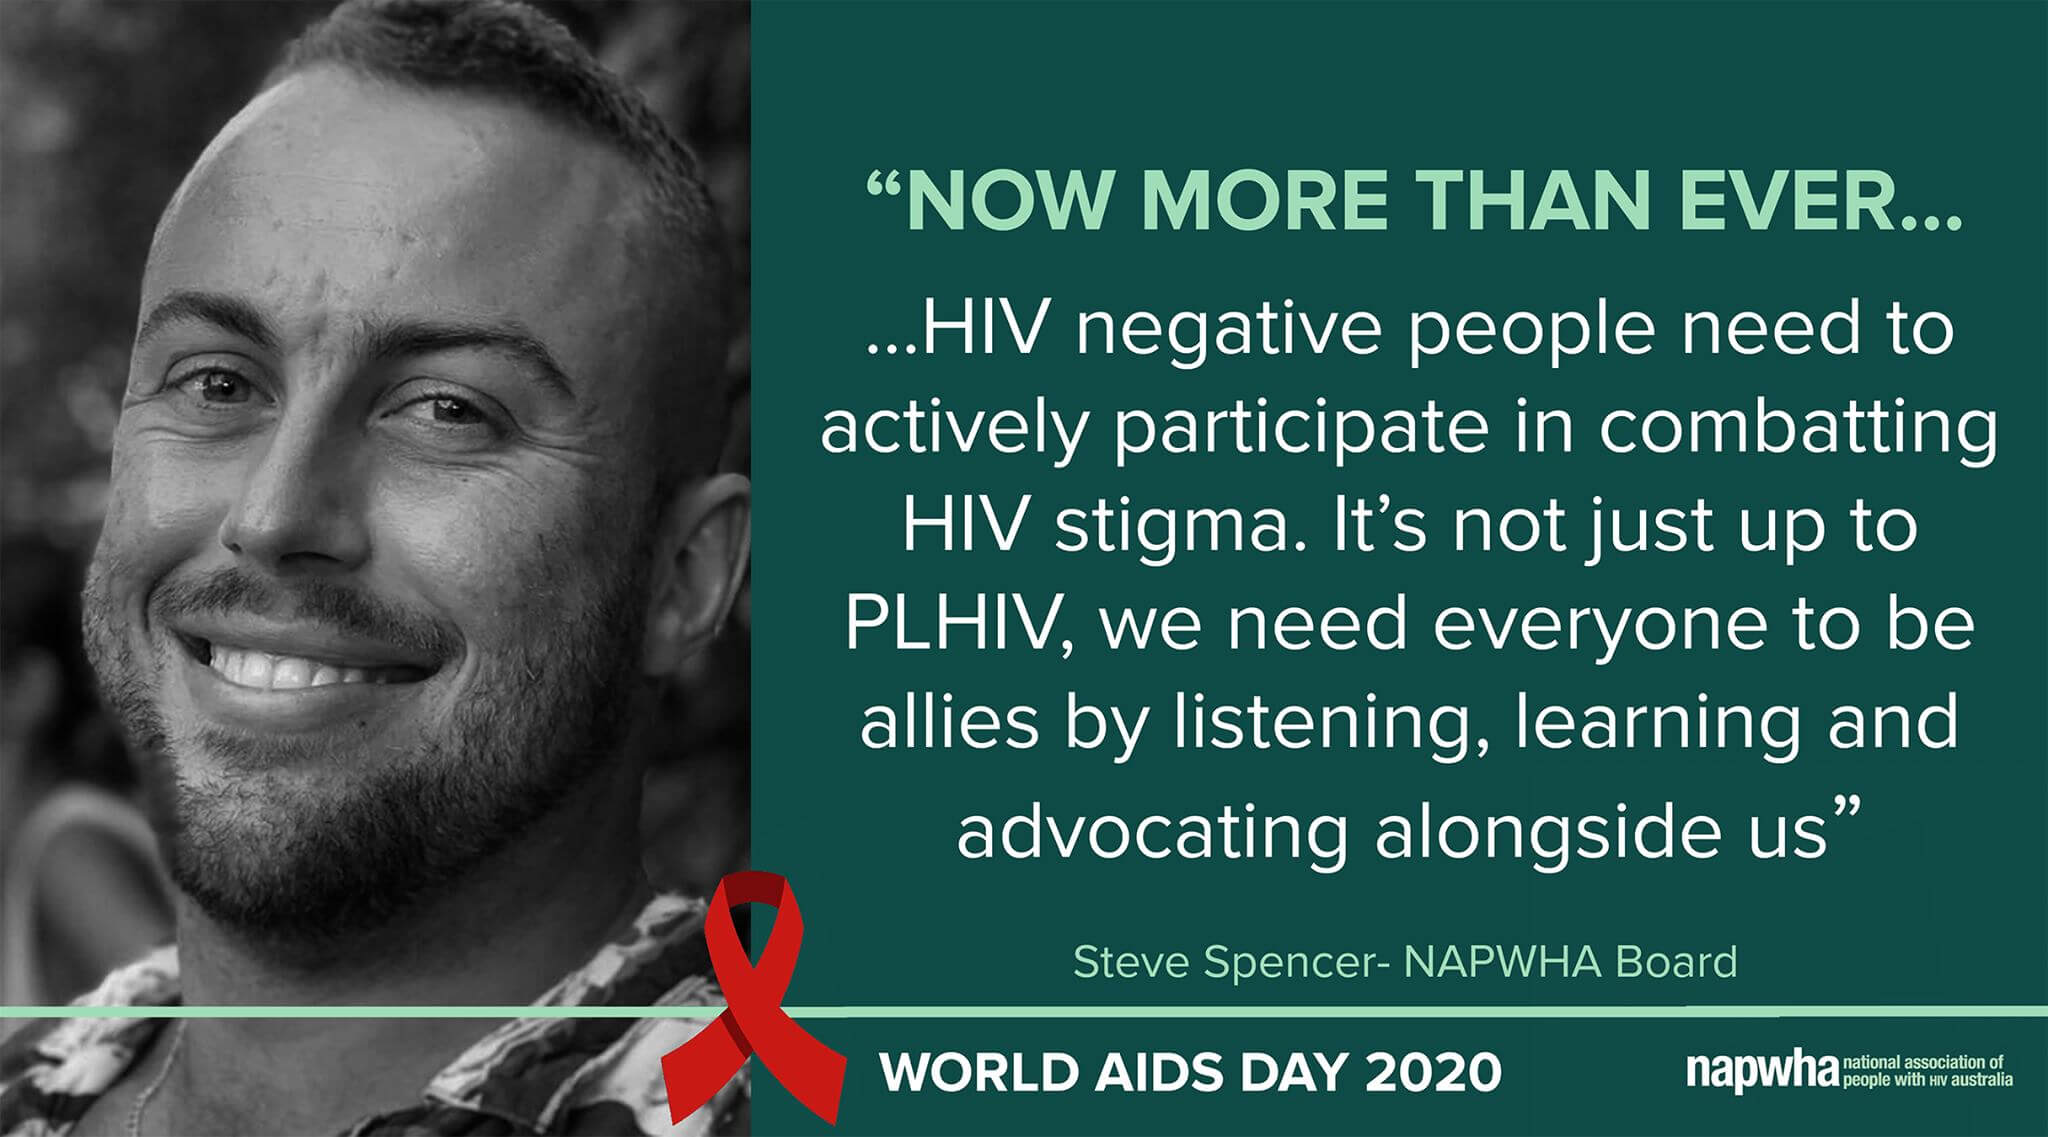 Steve Spencer, NAPWHA Board provides a World AIDS Day 2020 message